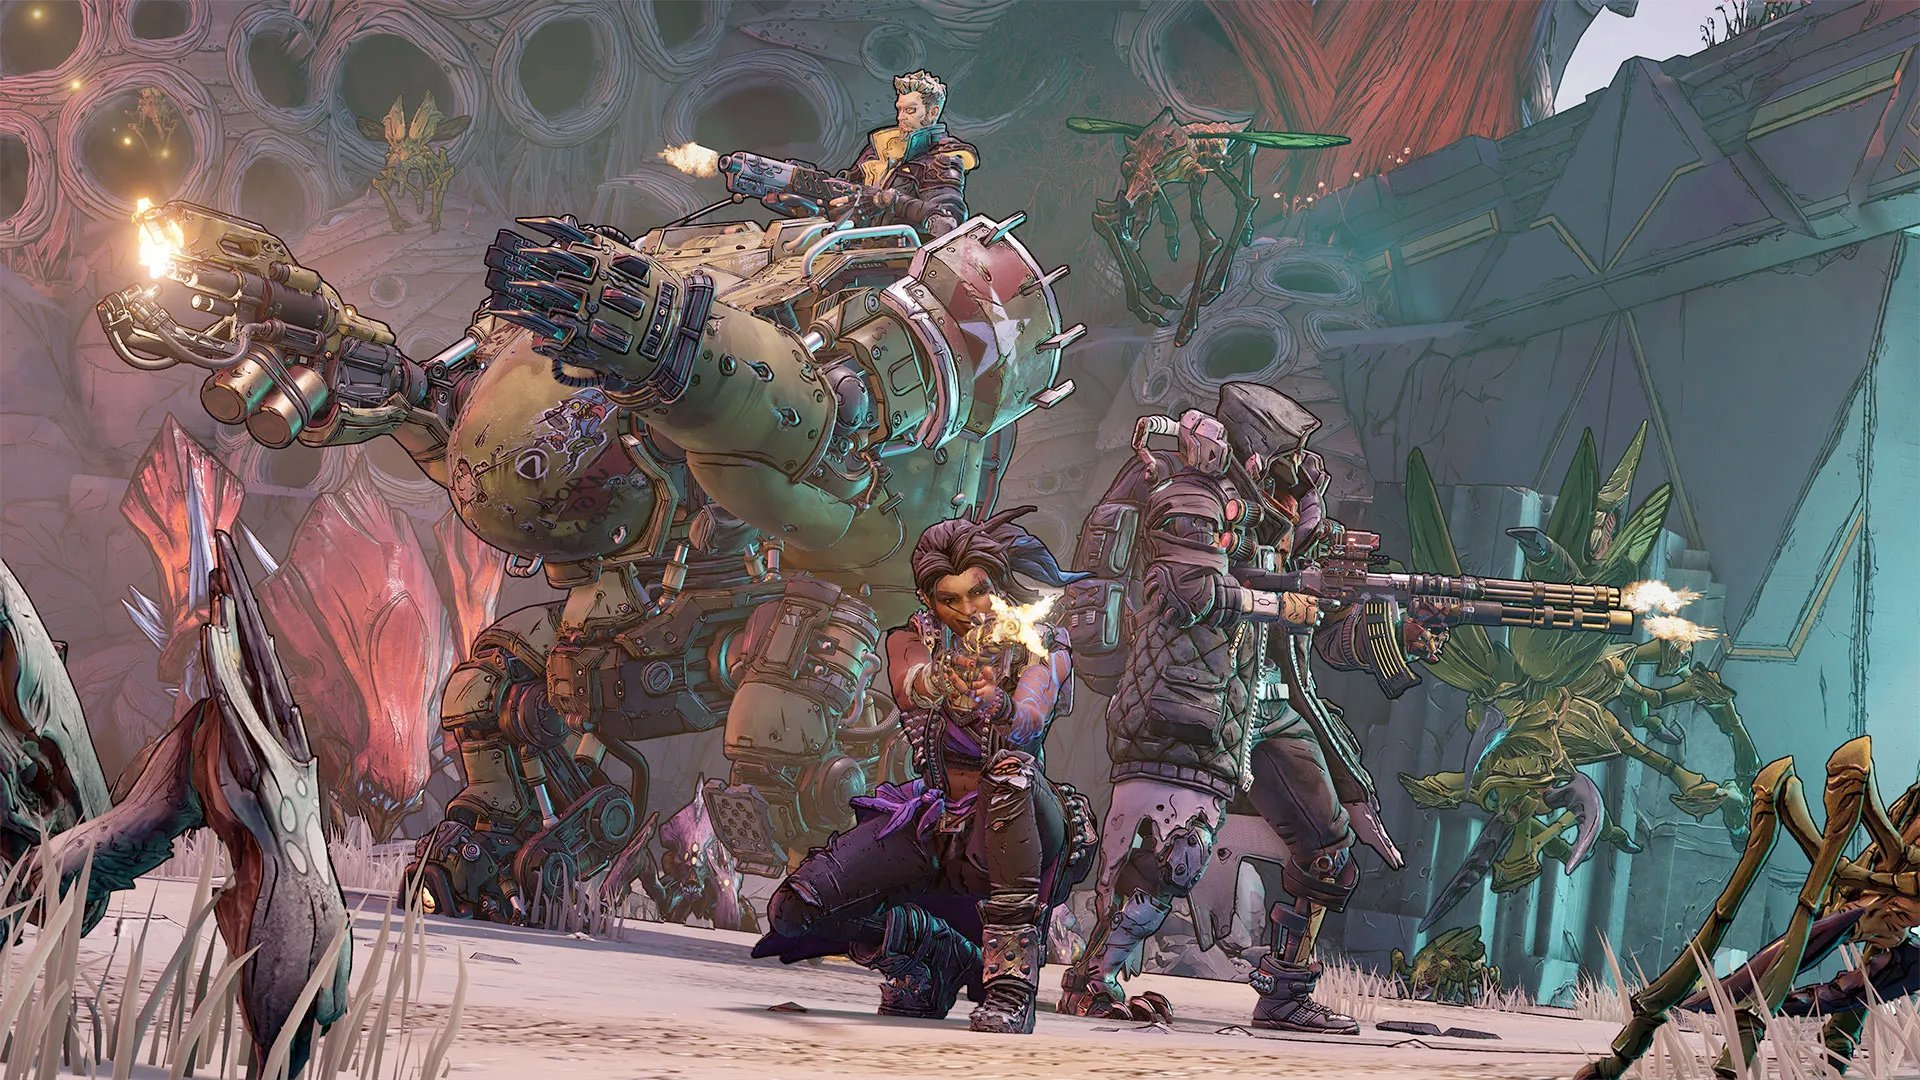 Borderlands 3 was 2K's fastest-selling title and broke PC records for the publisher